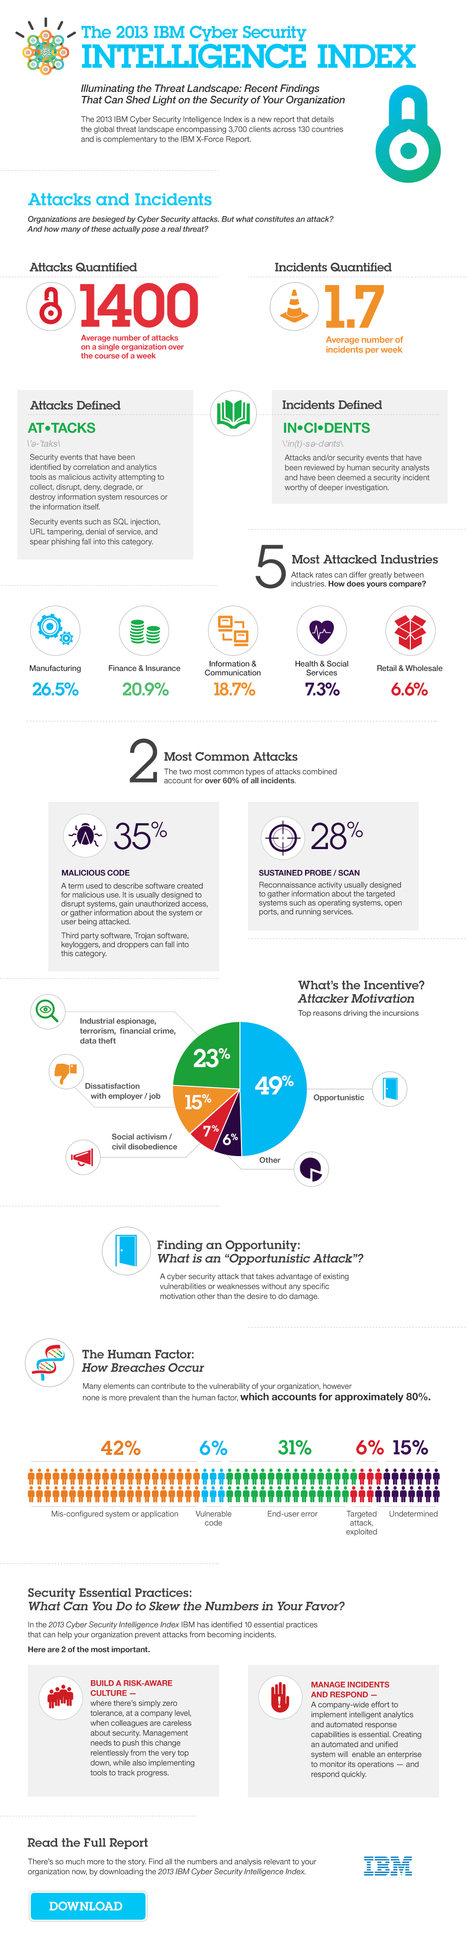 Cloud Infographic: 2013 Cyber Security Intelligence Index | IBM | Scoop.it